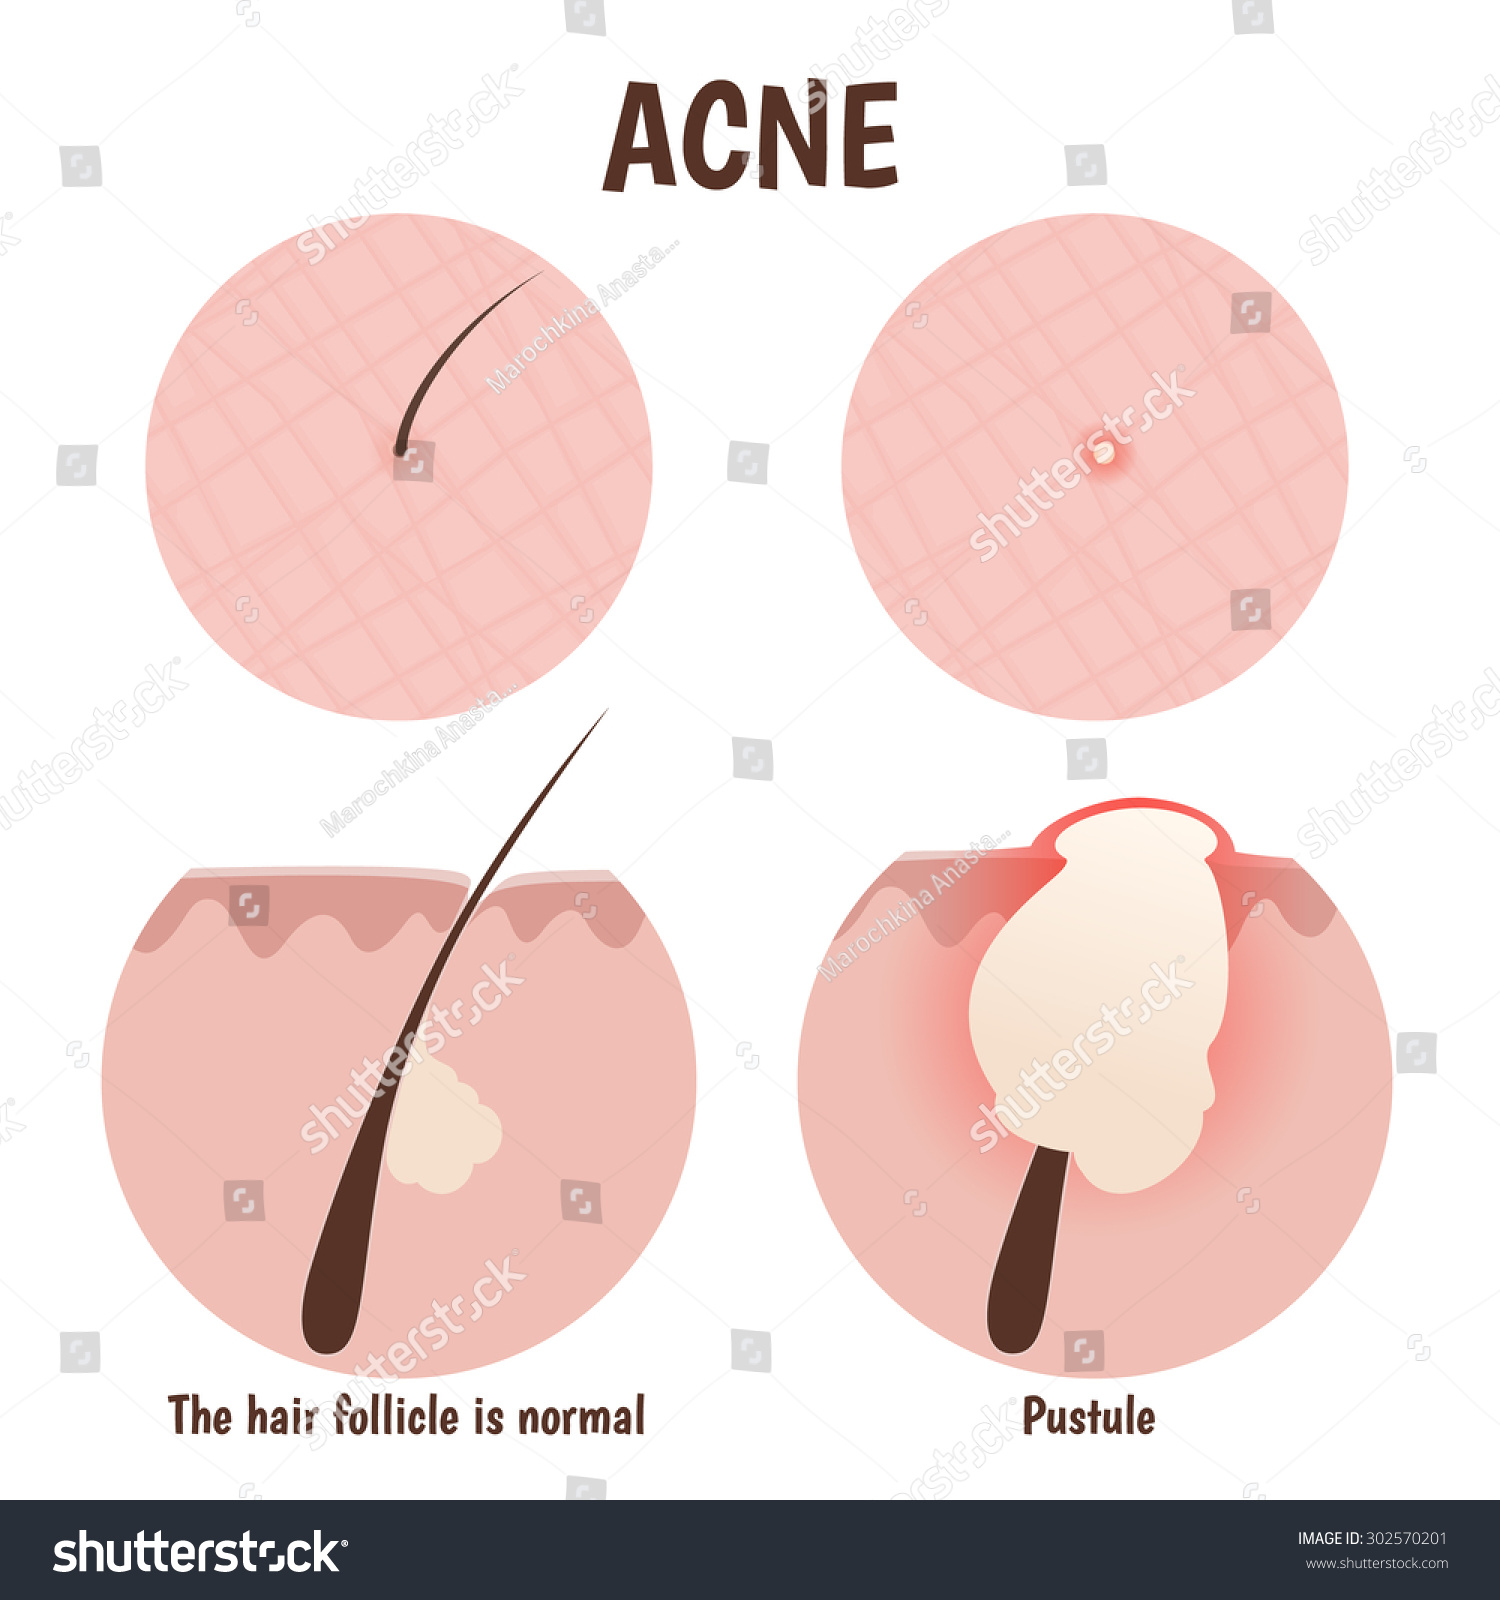 structure hair follicle problem skin pustules stock vector, Skeleton